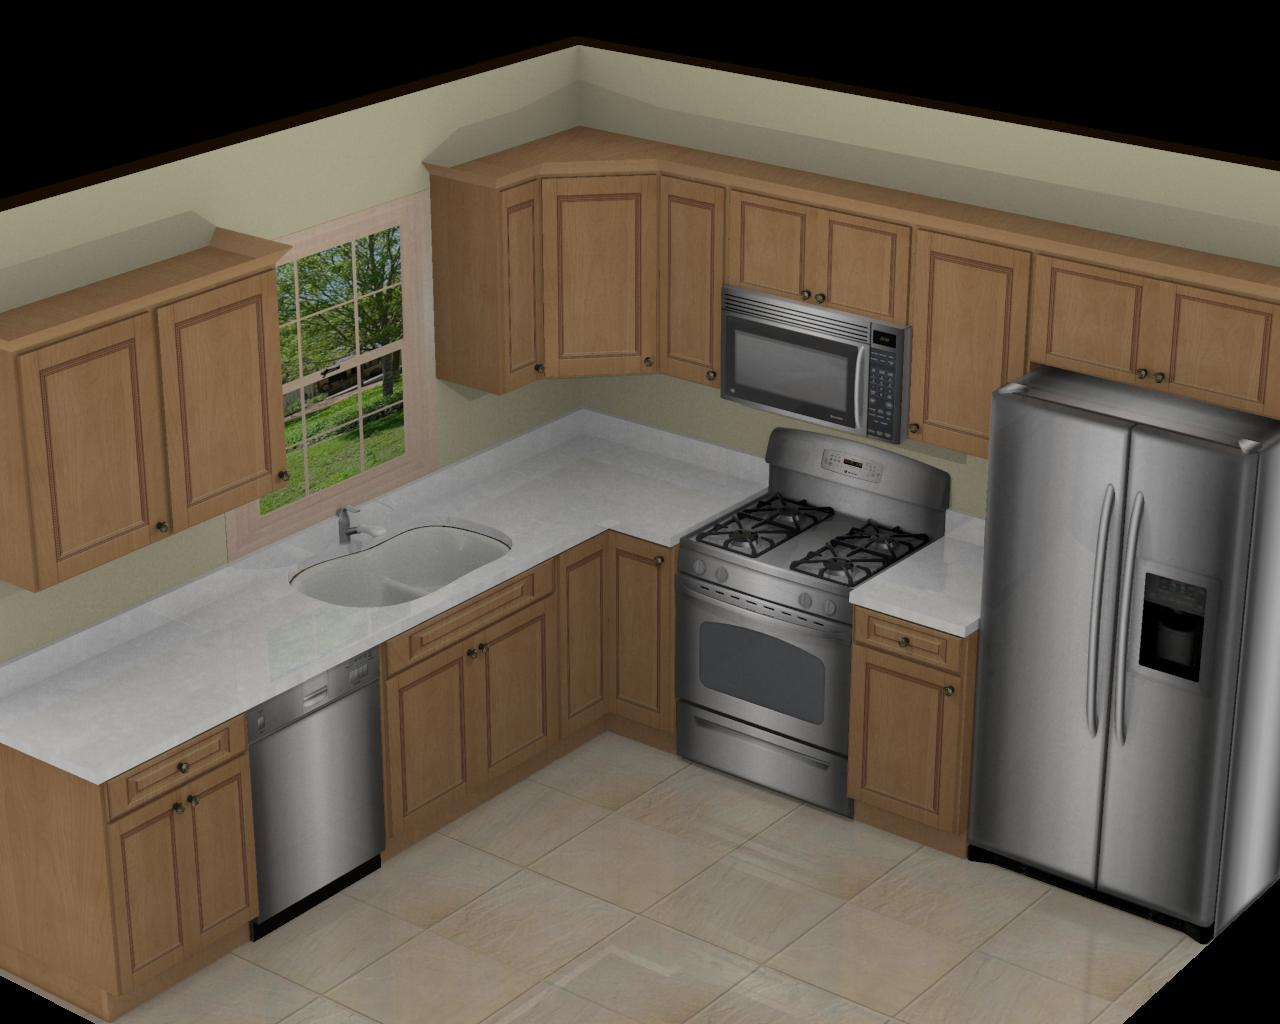 Foundation dezin decor 3d kitchen model design for Kitchen design ideas images